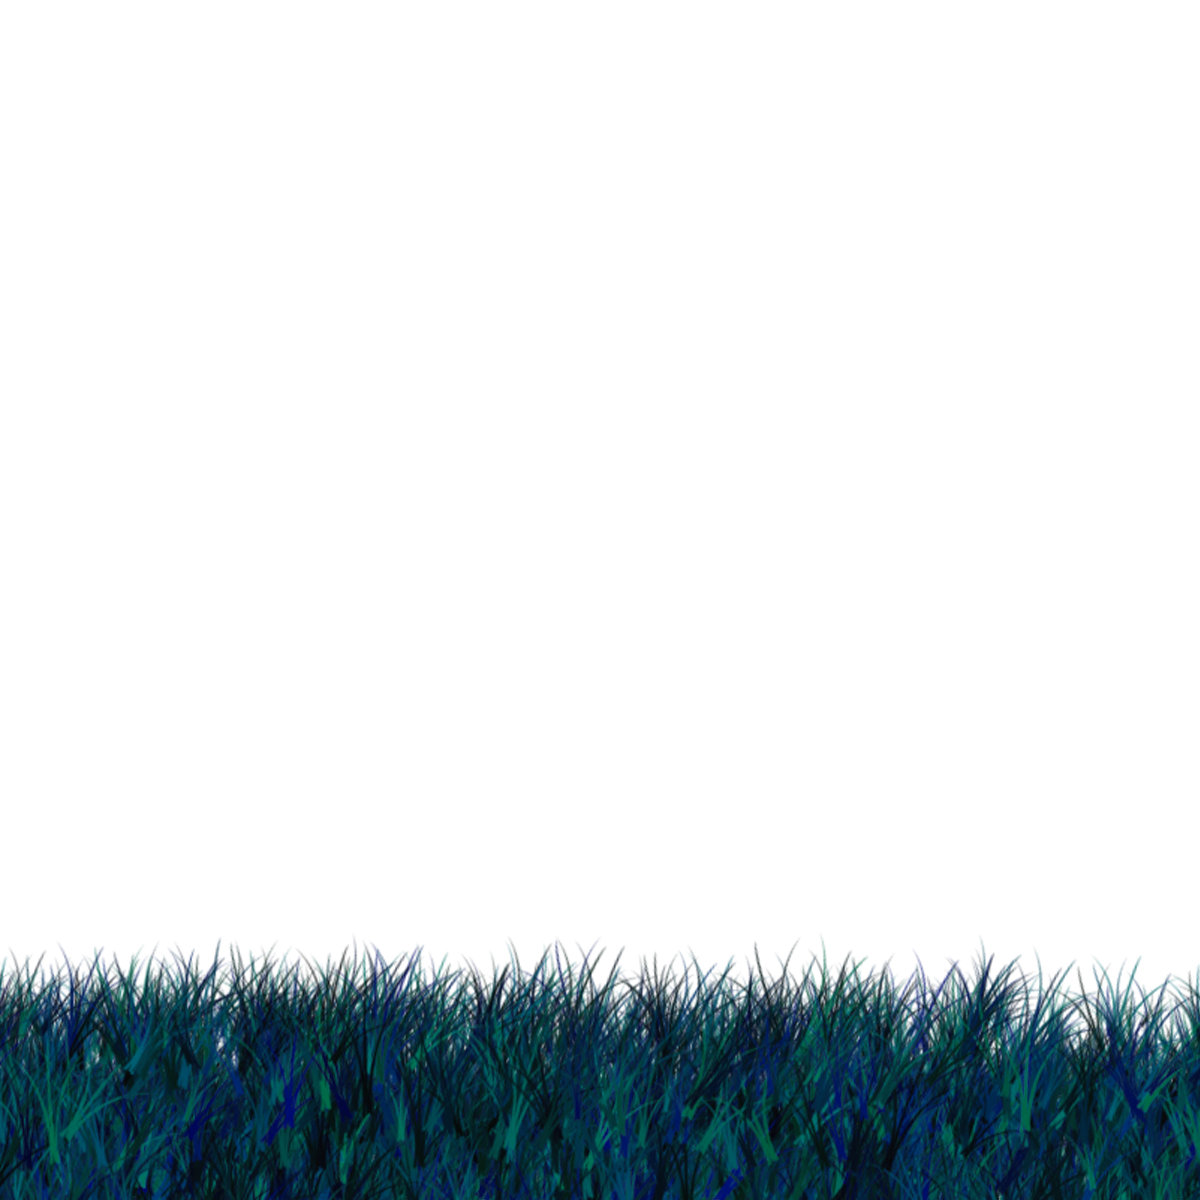 Pin by downloadpng on Downlaod Png images Cartoon grass